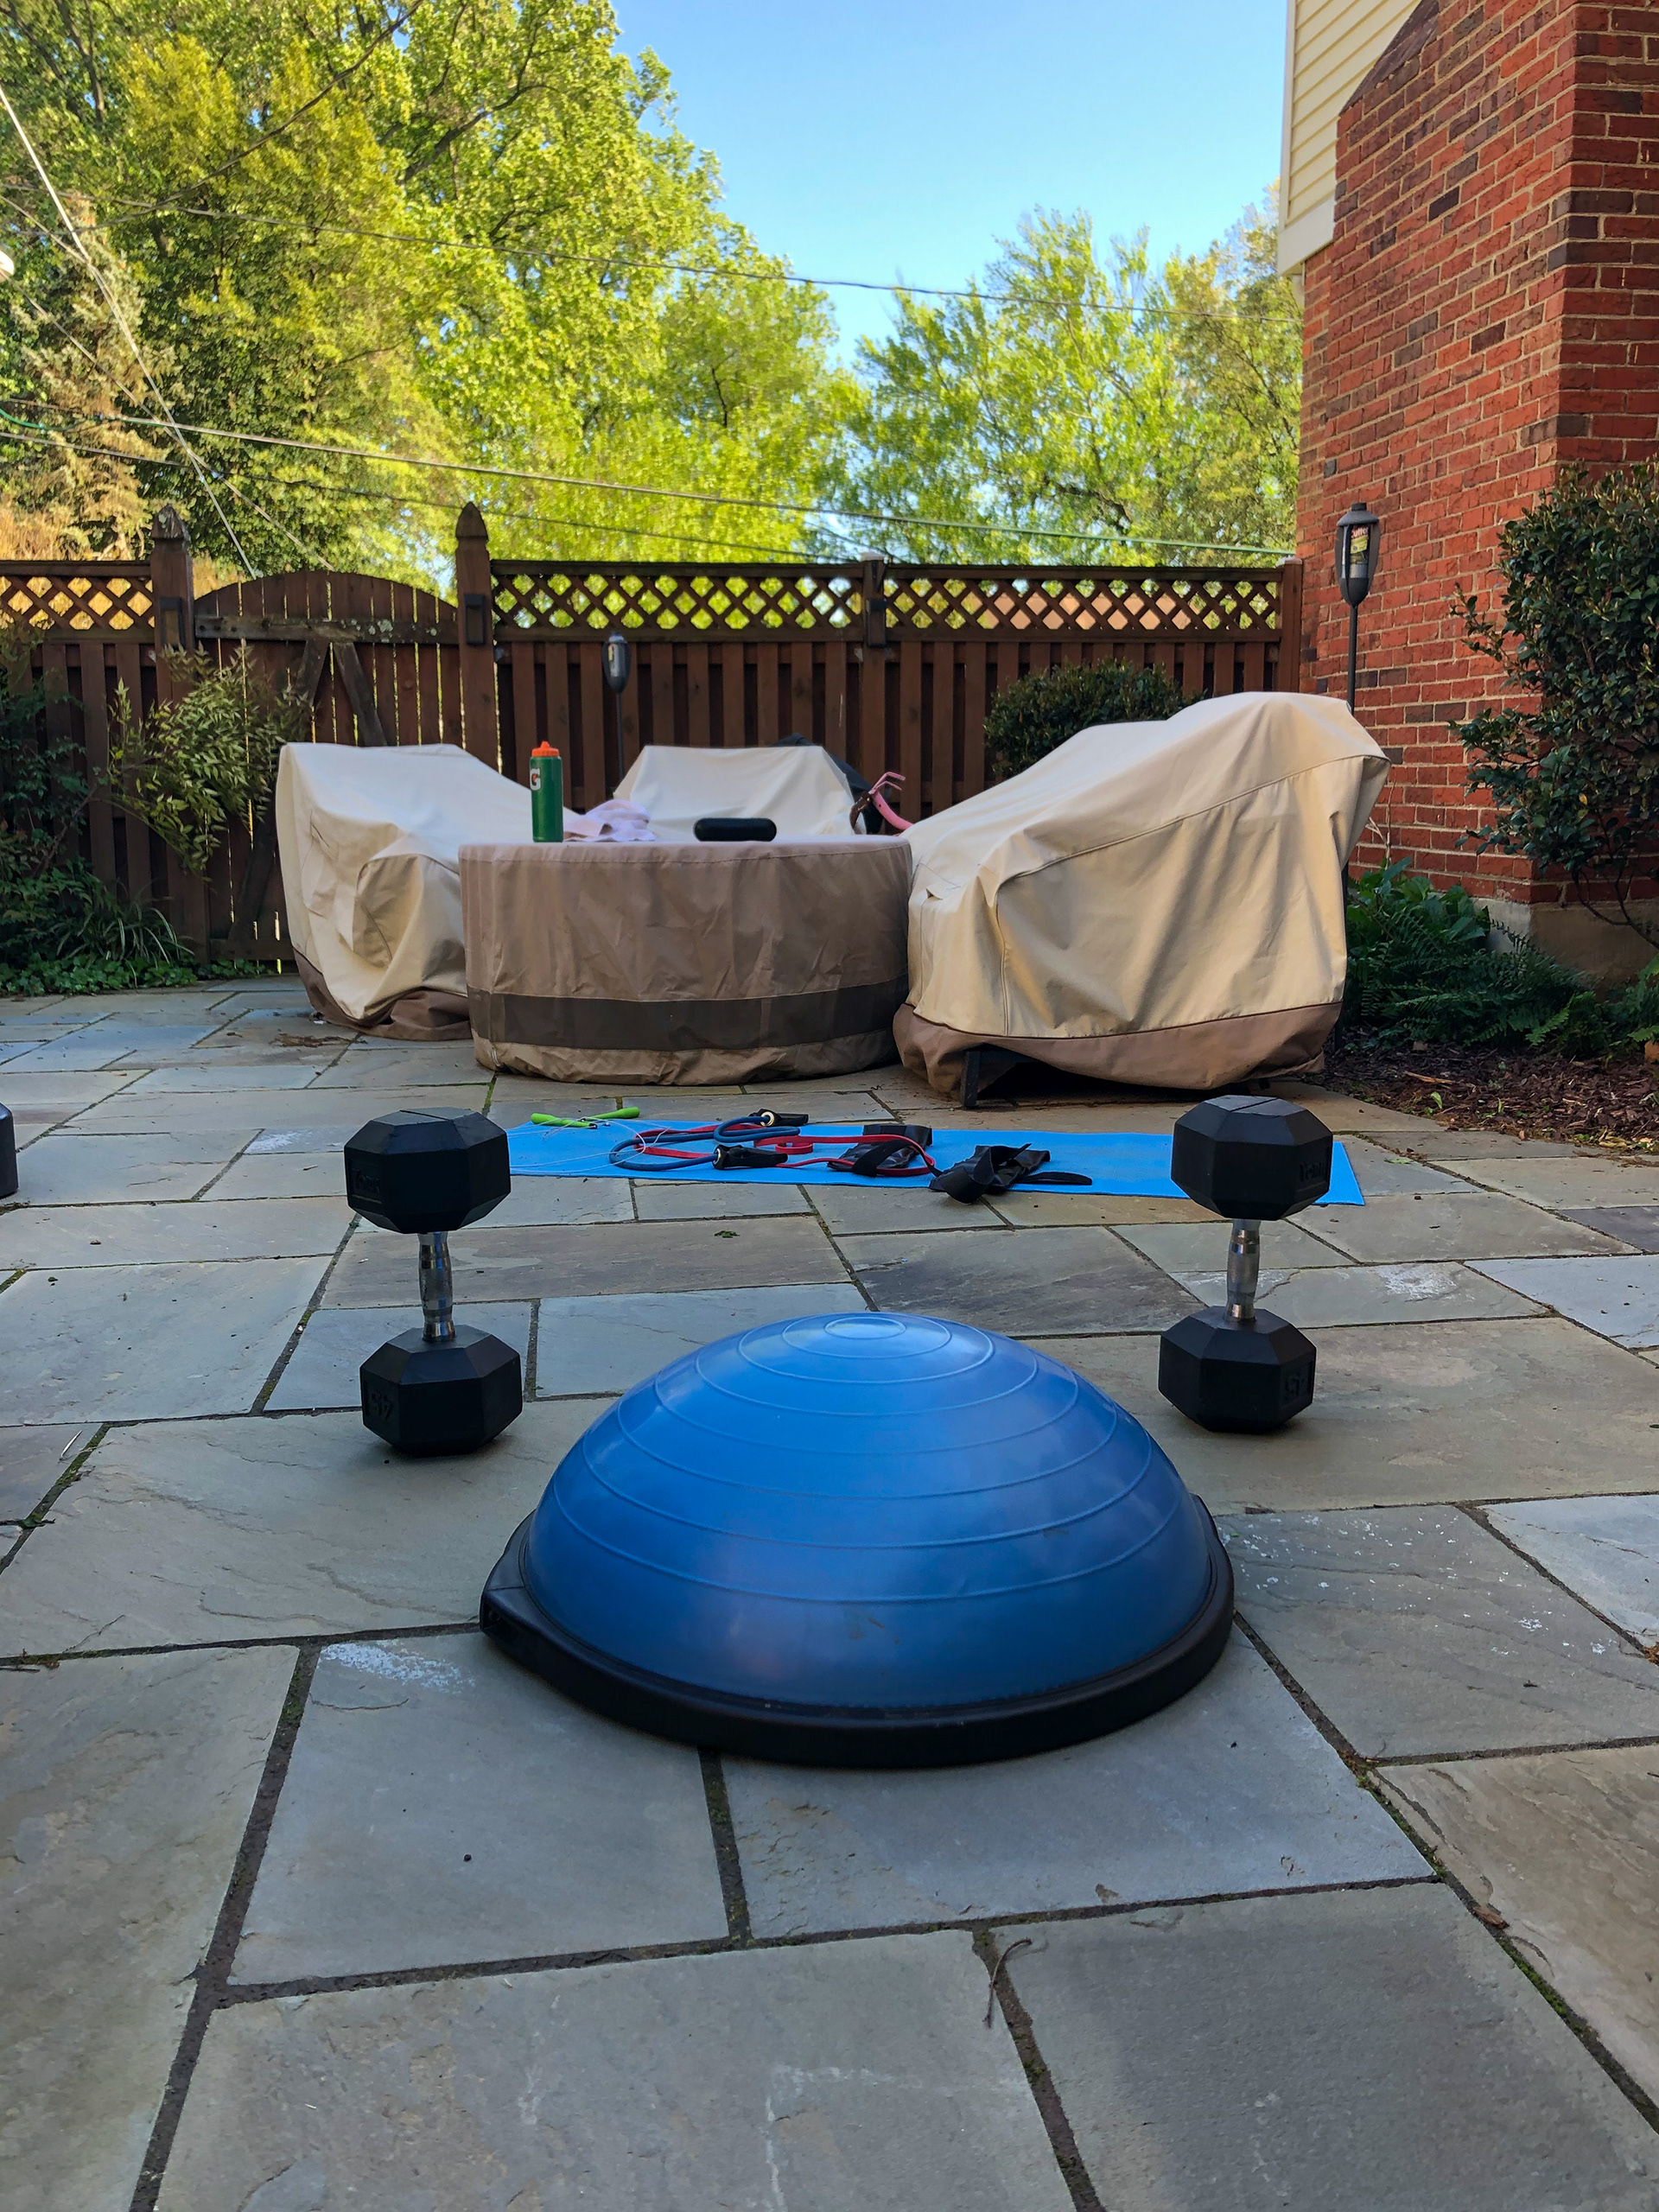 Noah Winslow's workout set up at his home, May 4th, 2020. Noah Winslow  |  Arlington, Virginia.